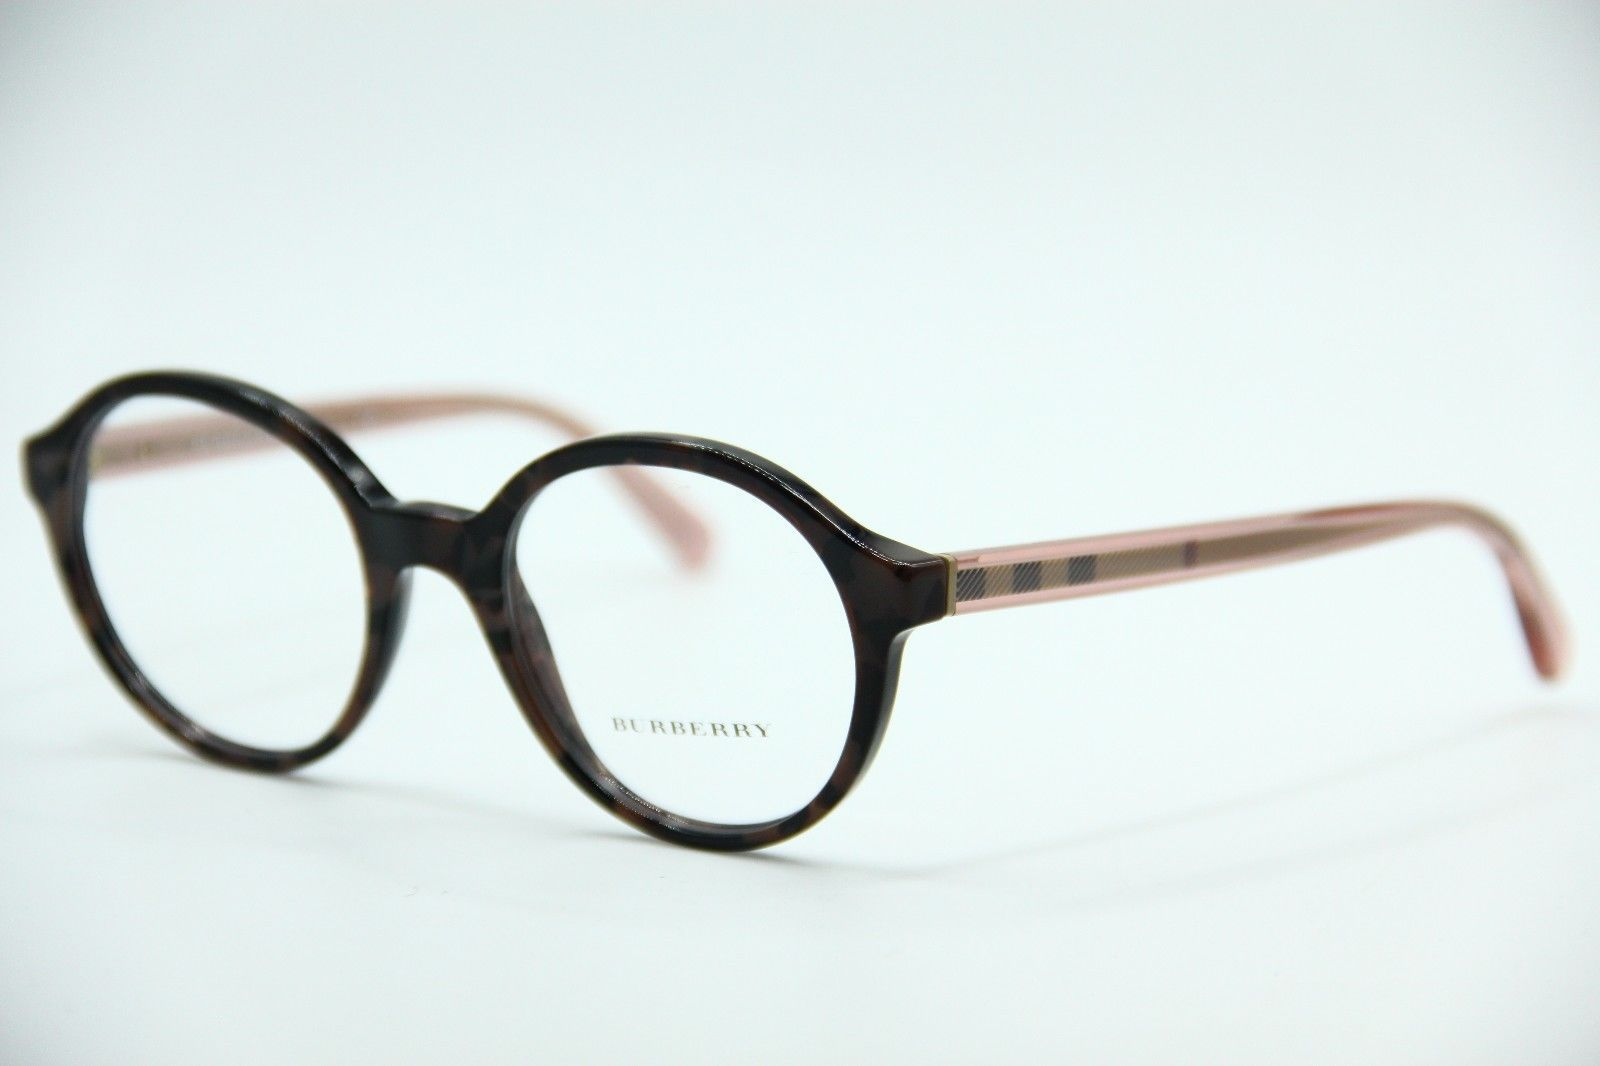 b64420bc793e New Burberry B 2254 3624 Brown Eyeglasses and 50 similar items. 57